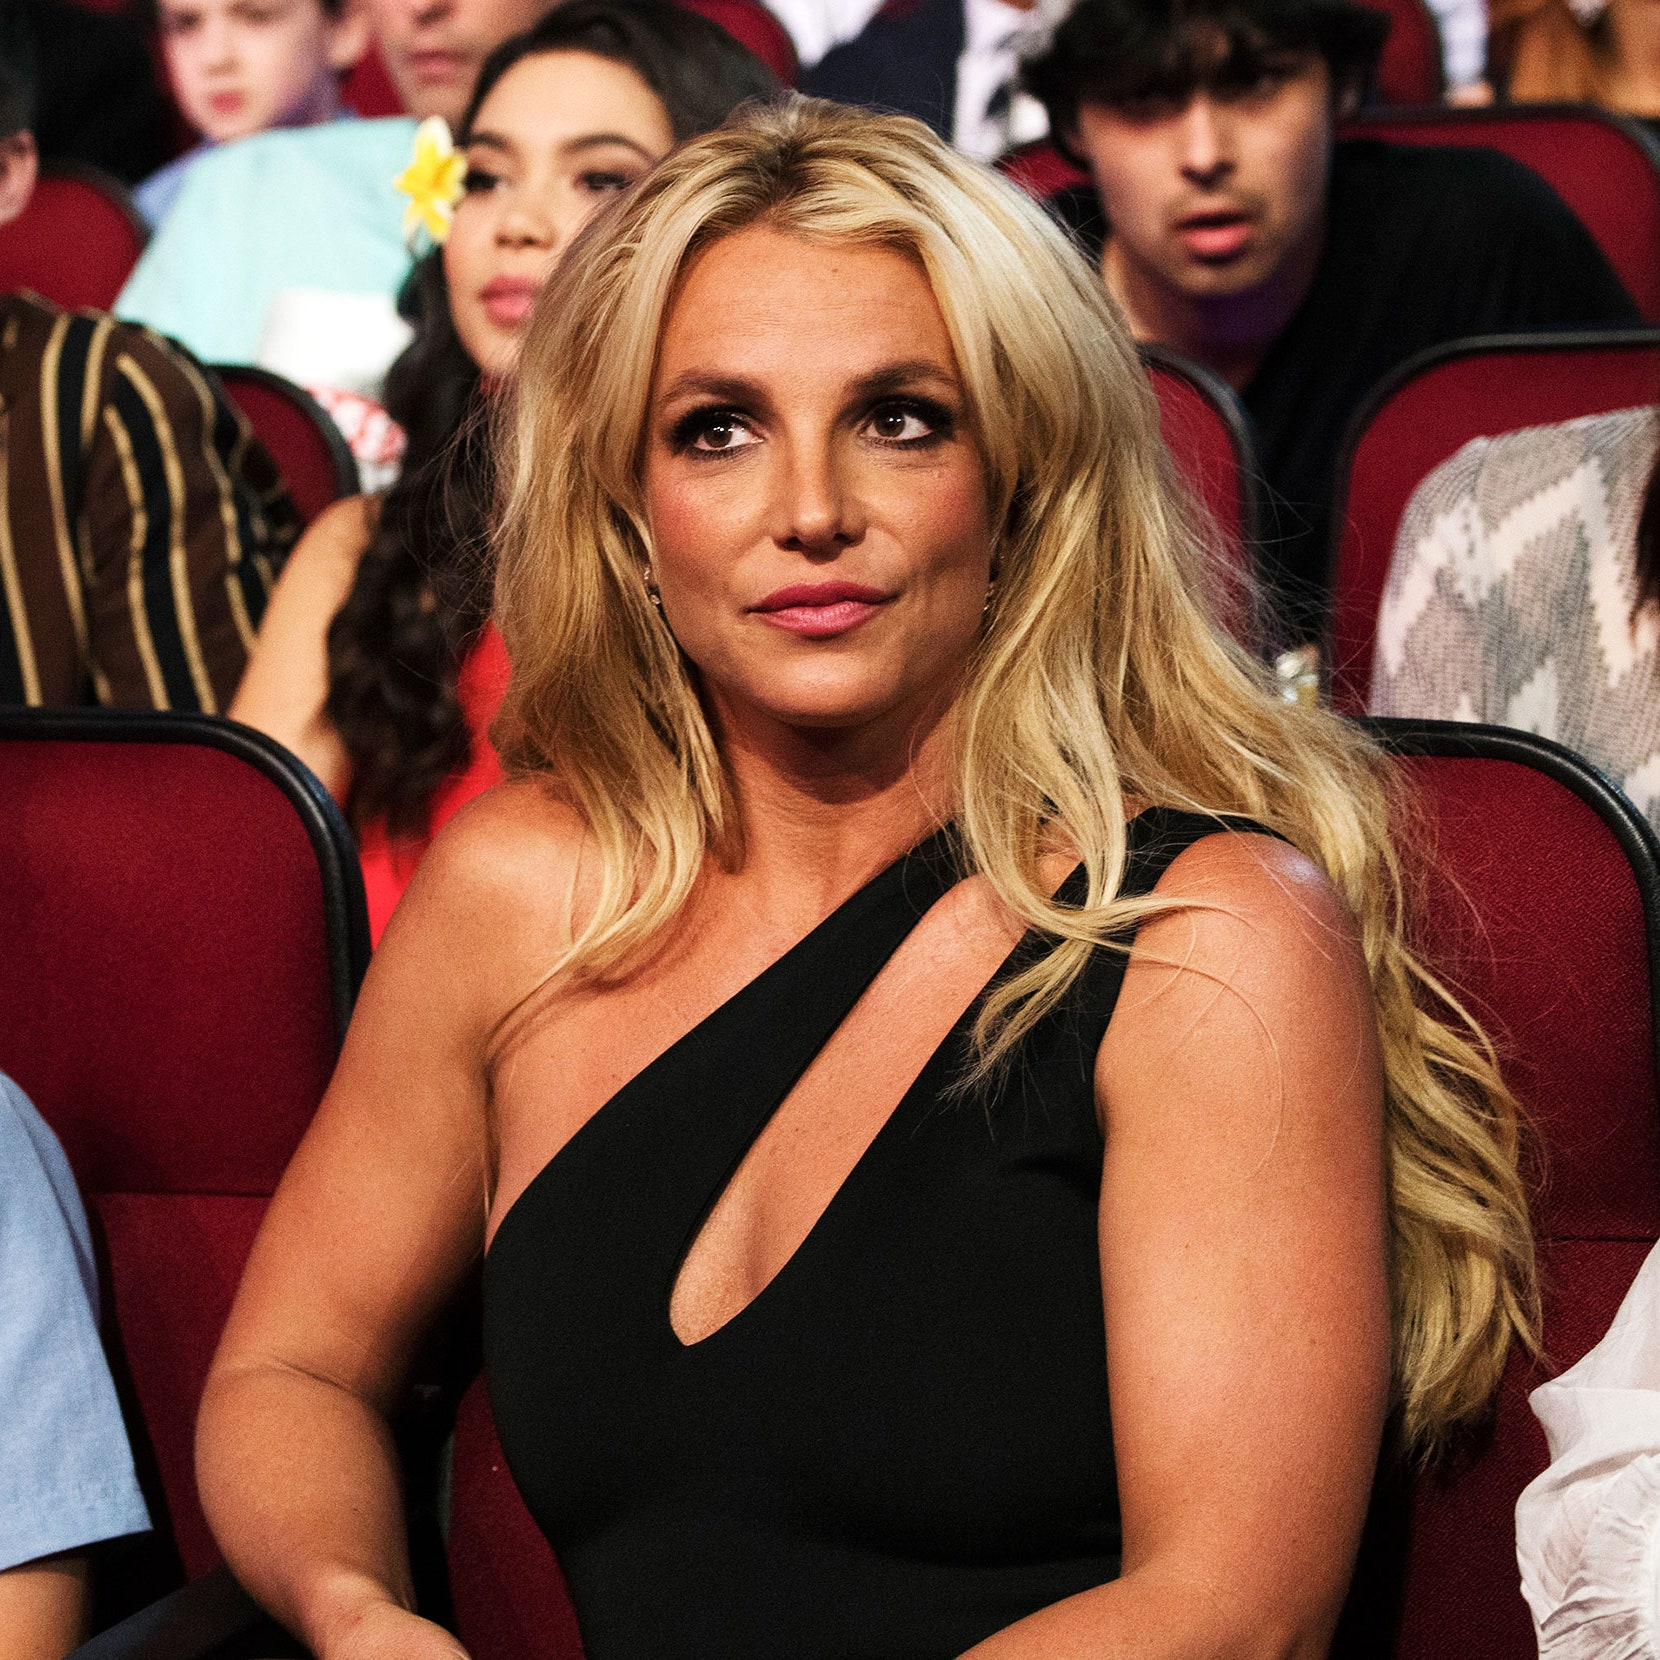 Britney Spears And Her World Of Beauty